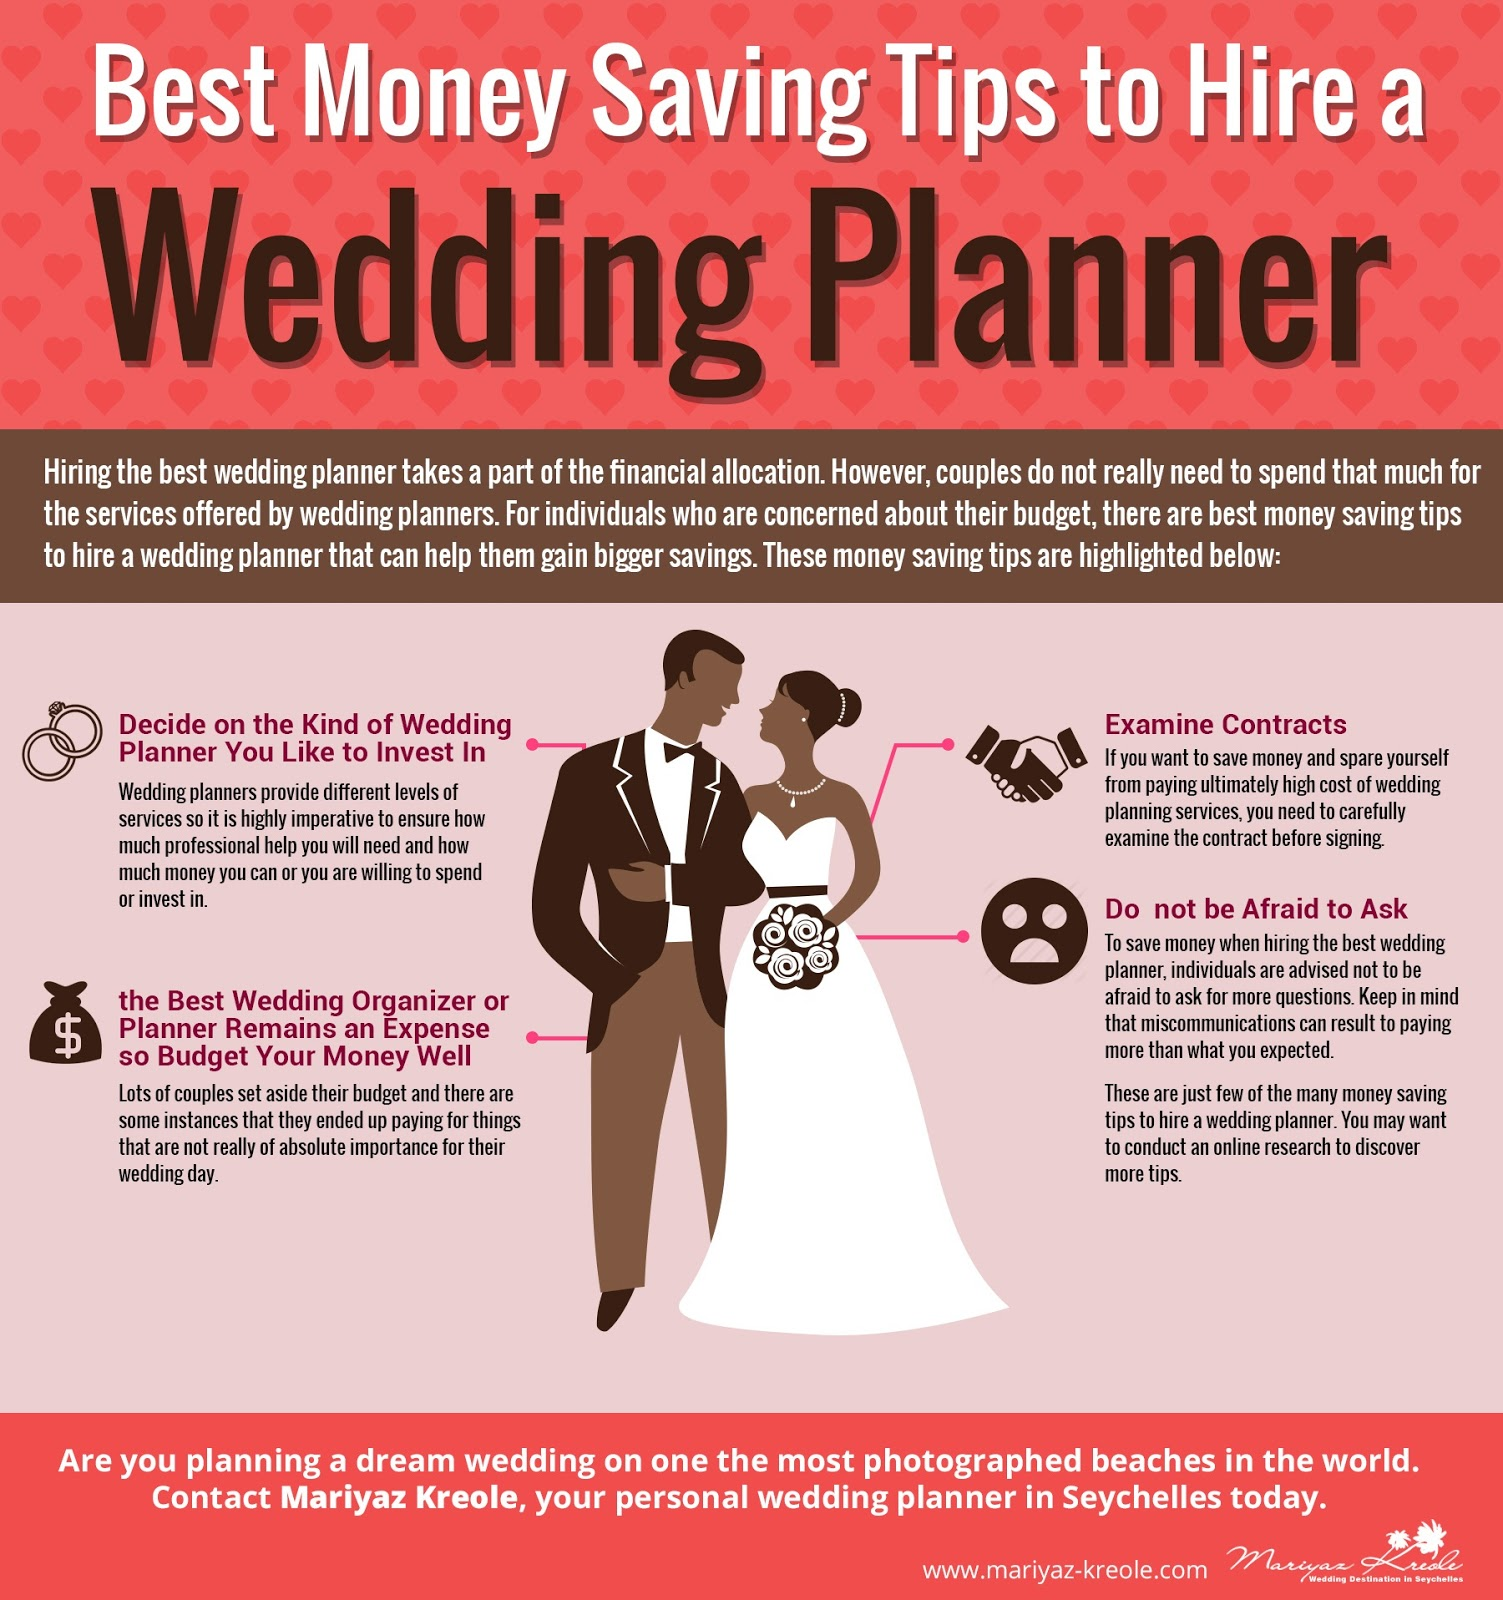 best money saving tips to hire a seychelles wedding planner